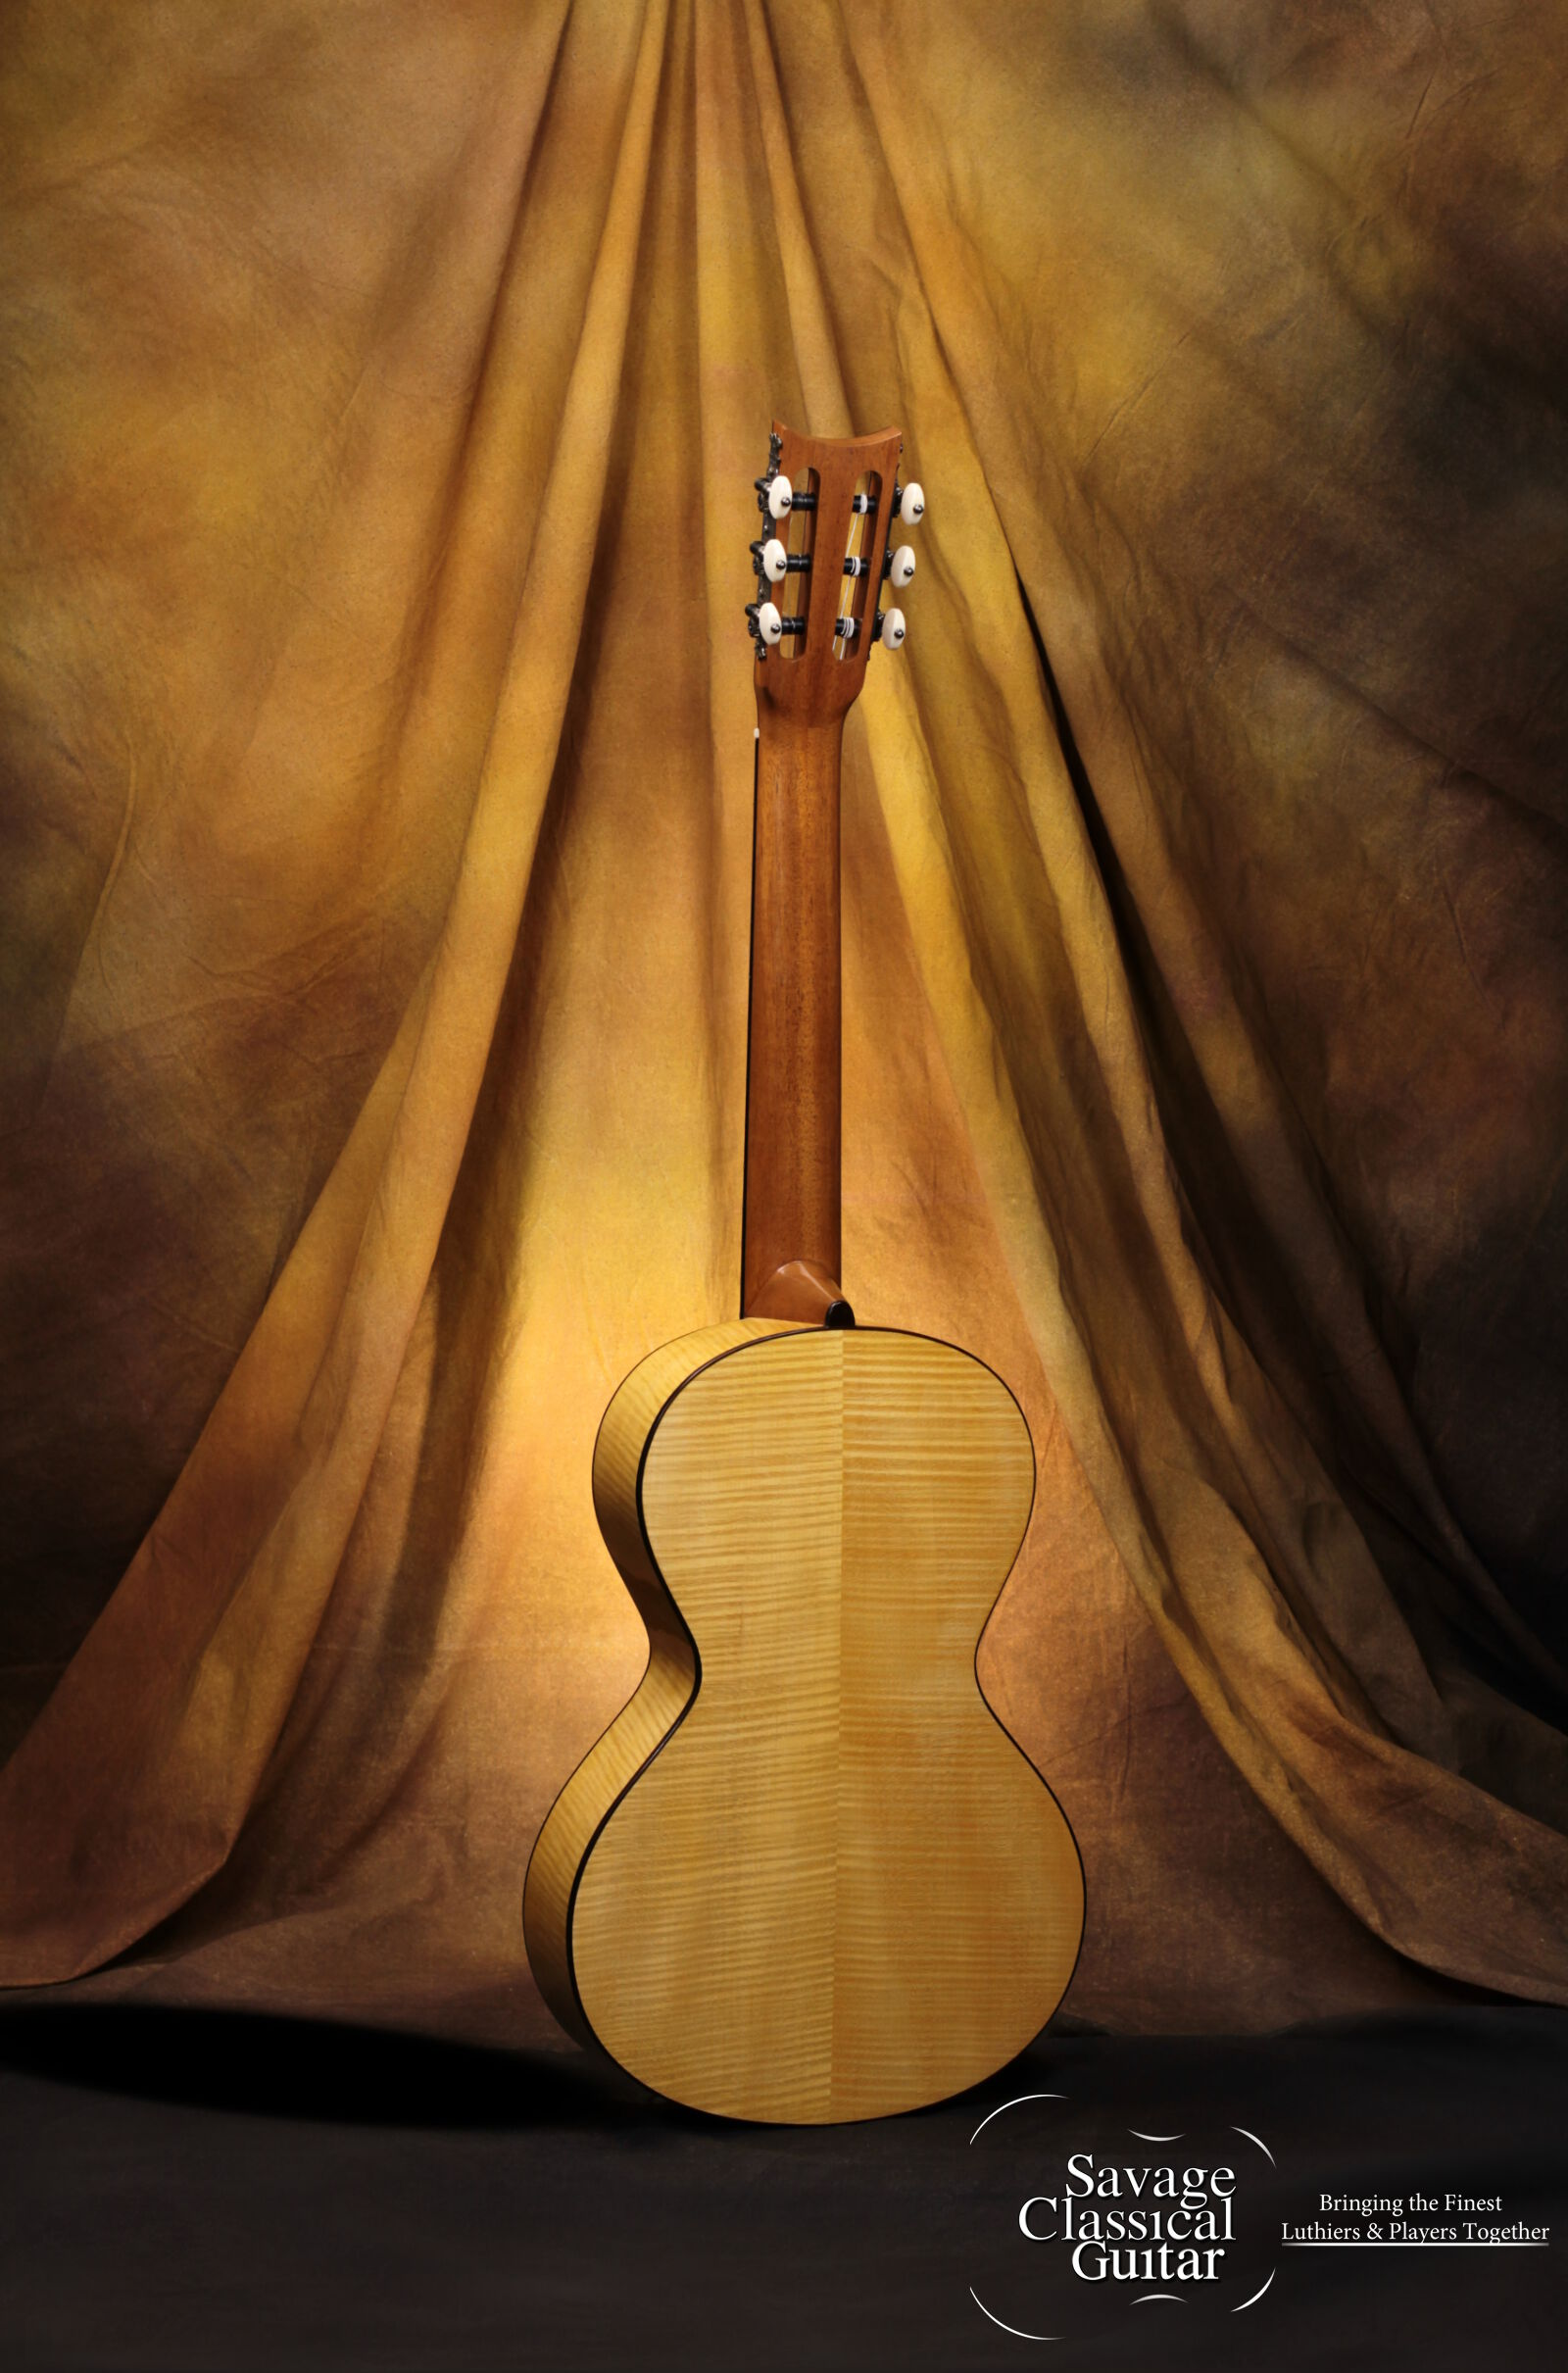 the early record of romanticism in the 19th century Romantic music is a period of western classical music that began in the late 18th  or early 19th century it is related to romanticism, the western artistic and.